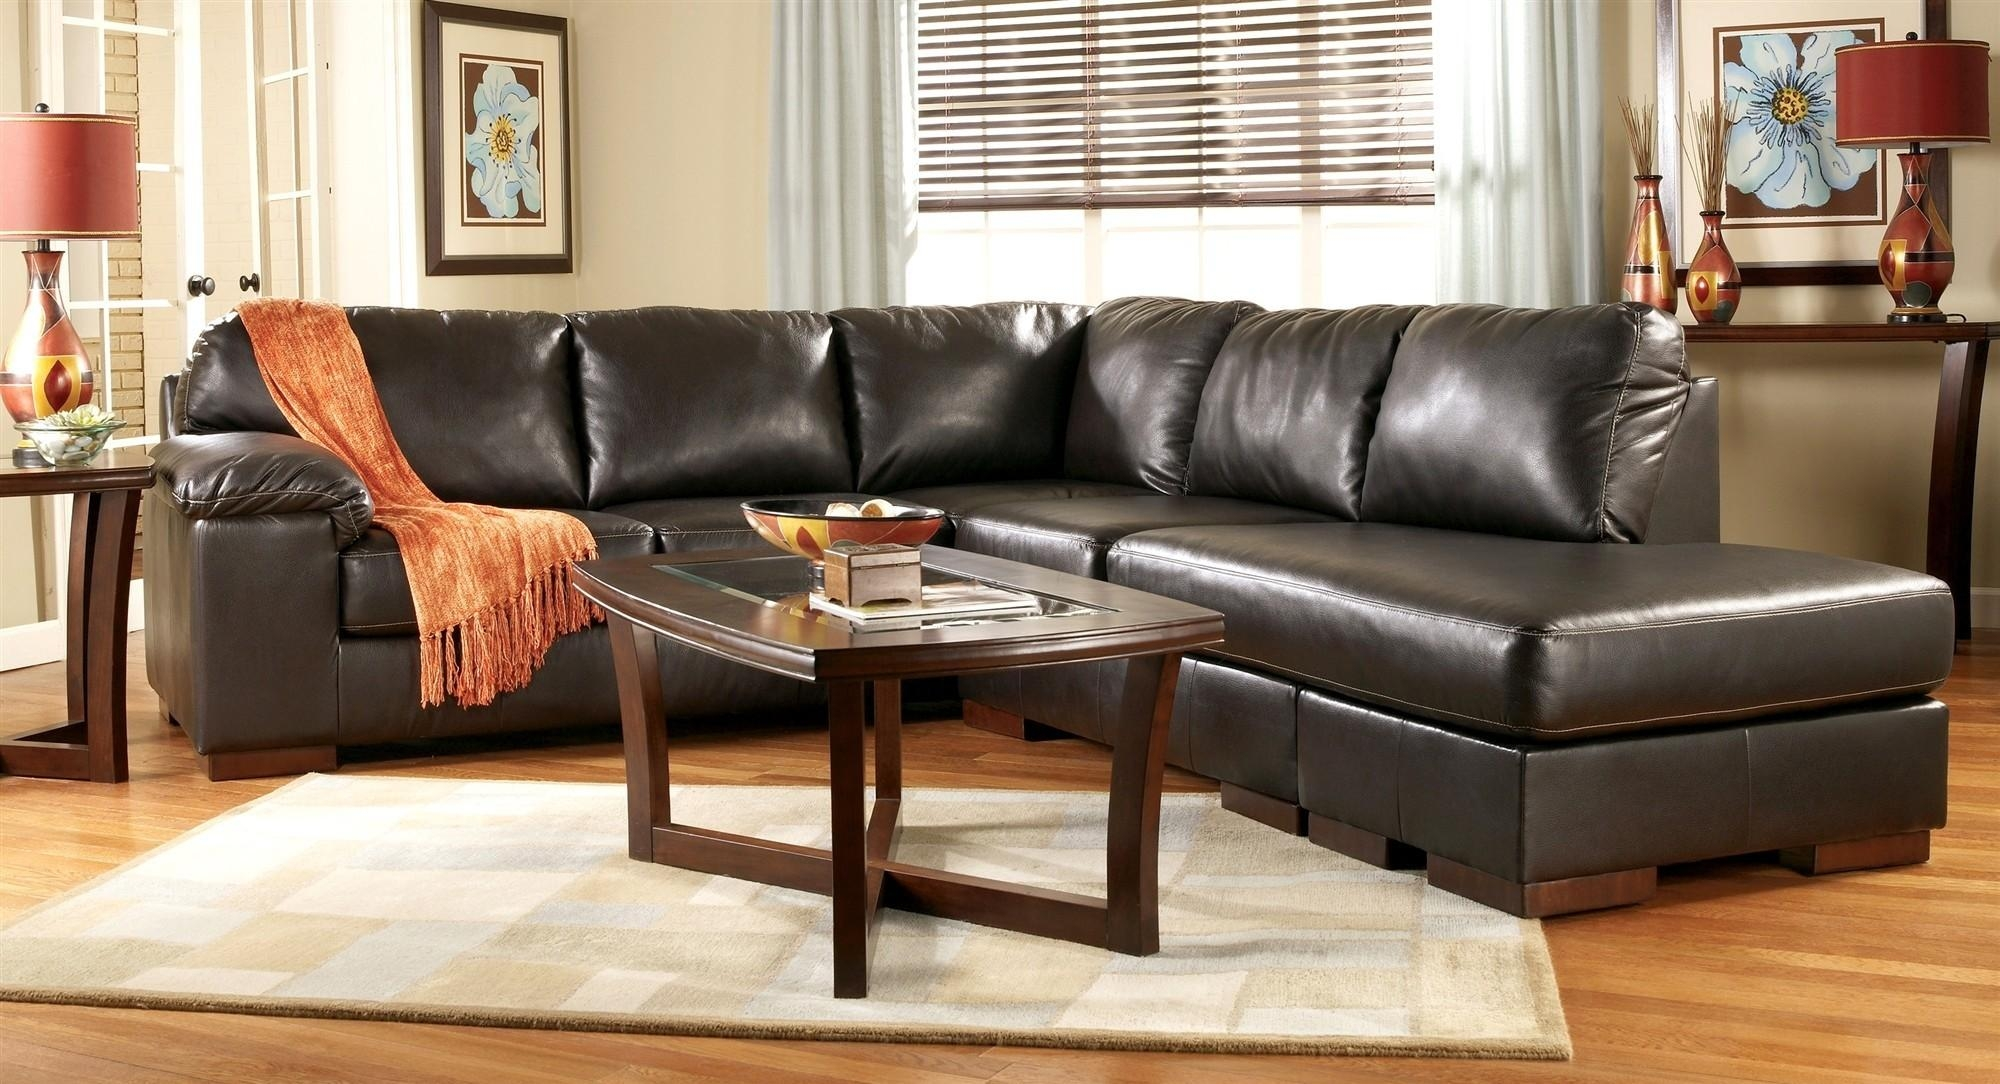 20 Best Ideas Dark Red Leather Couches